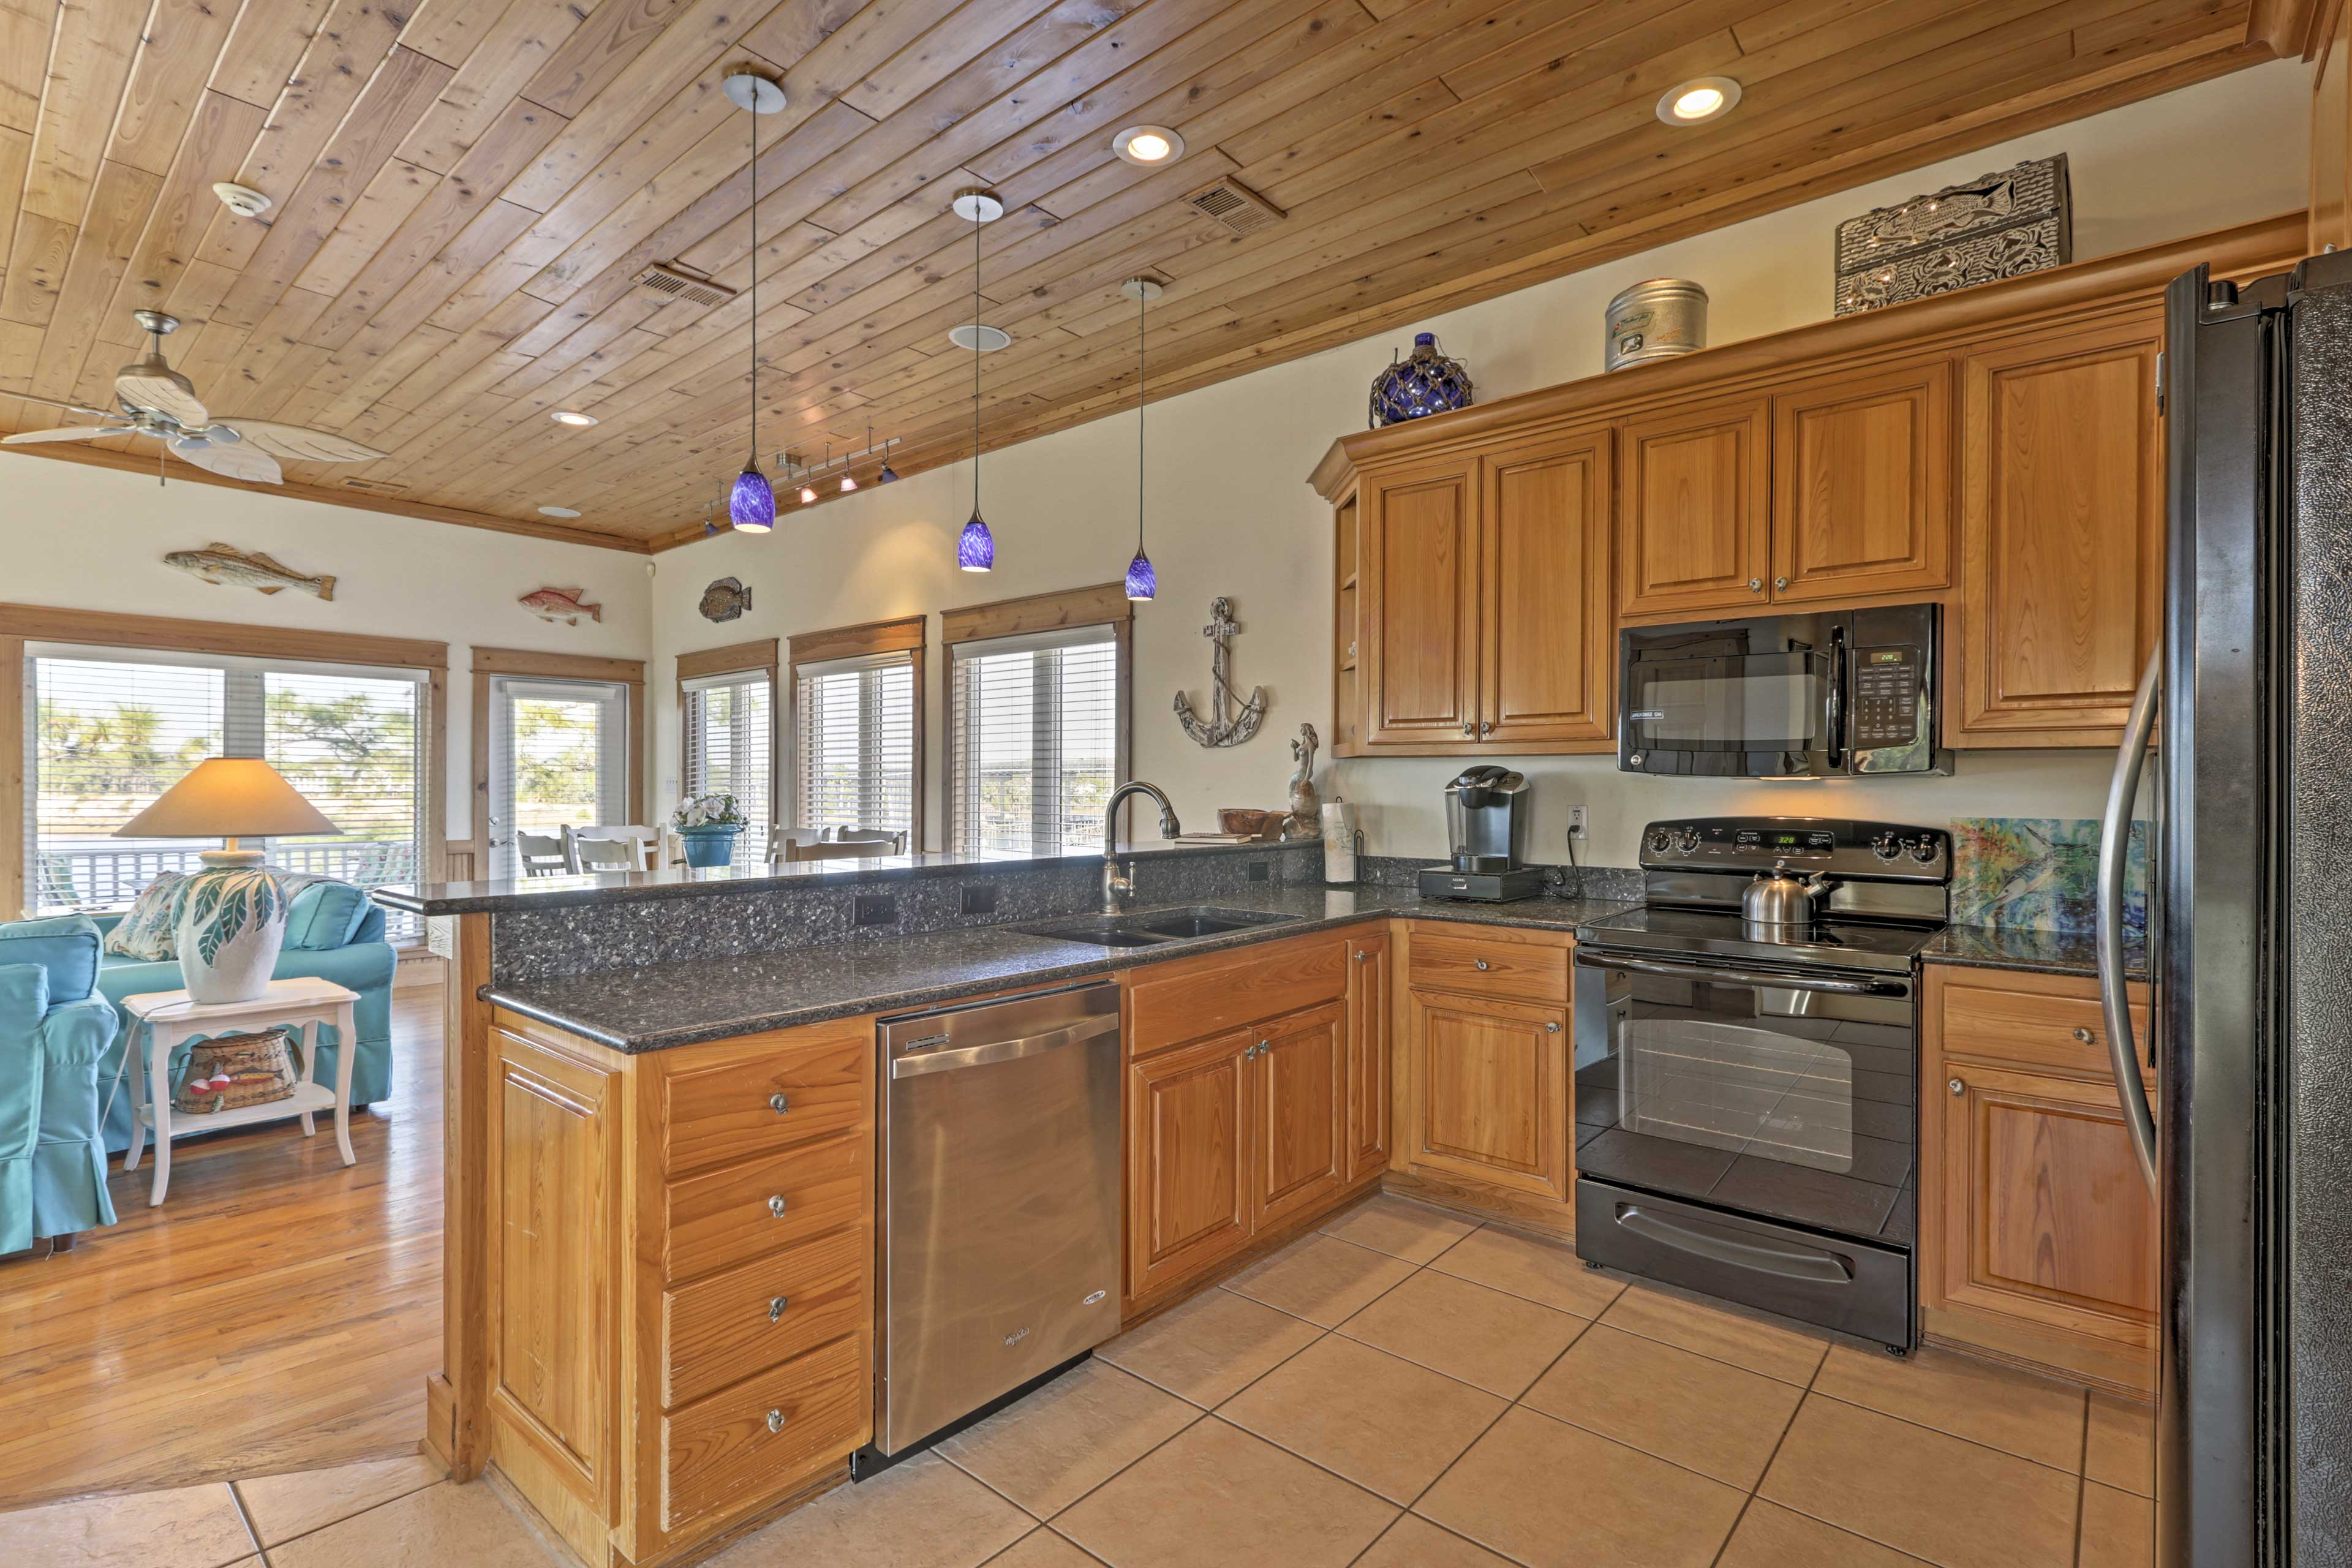 Easily fry up the catch of the day in this fully equipped kitchen.